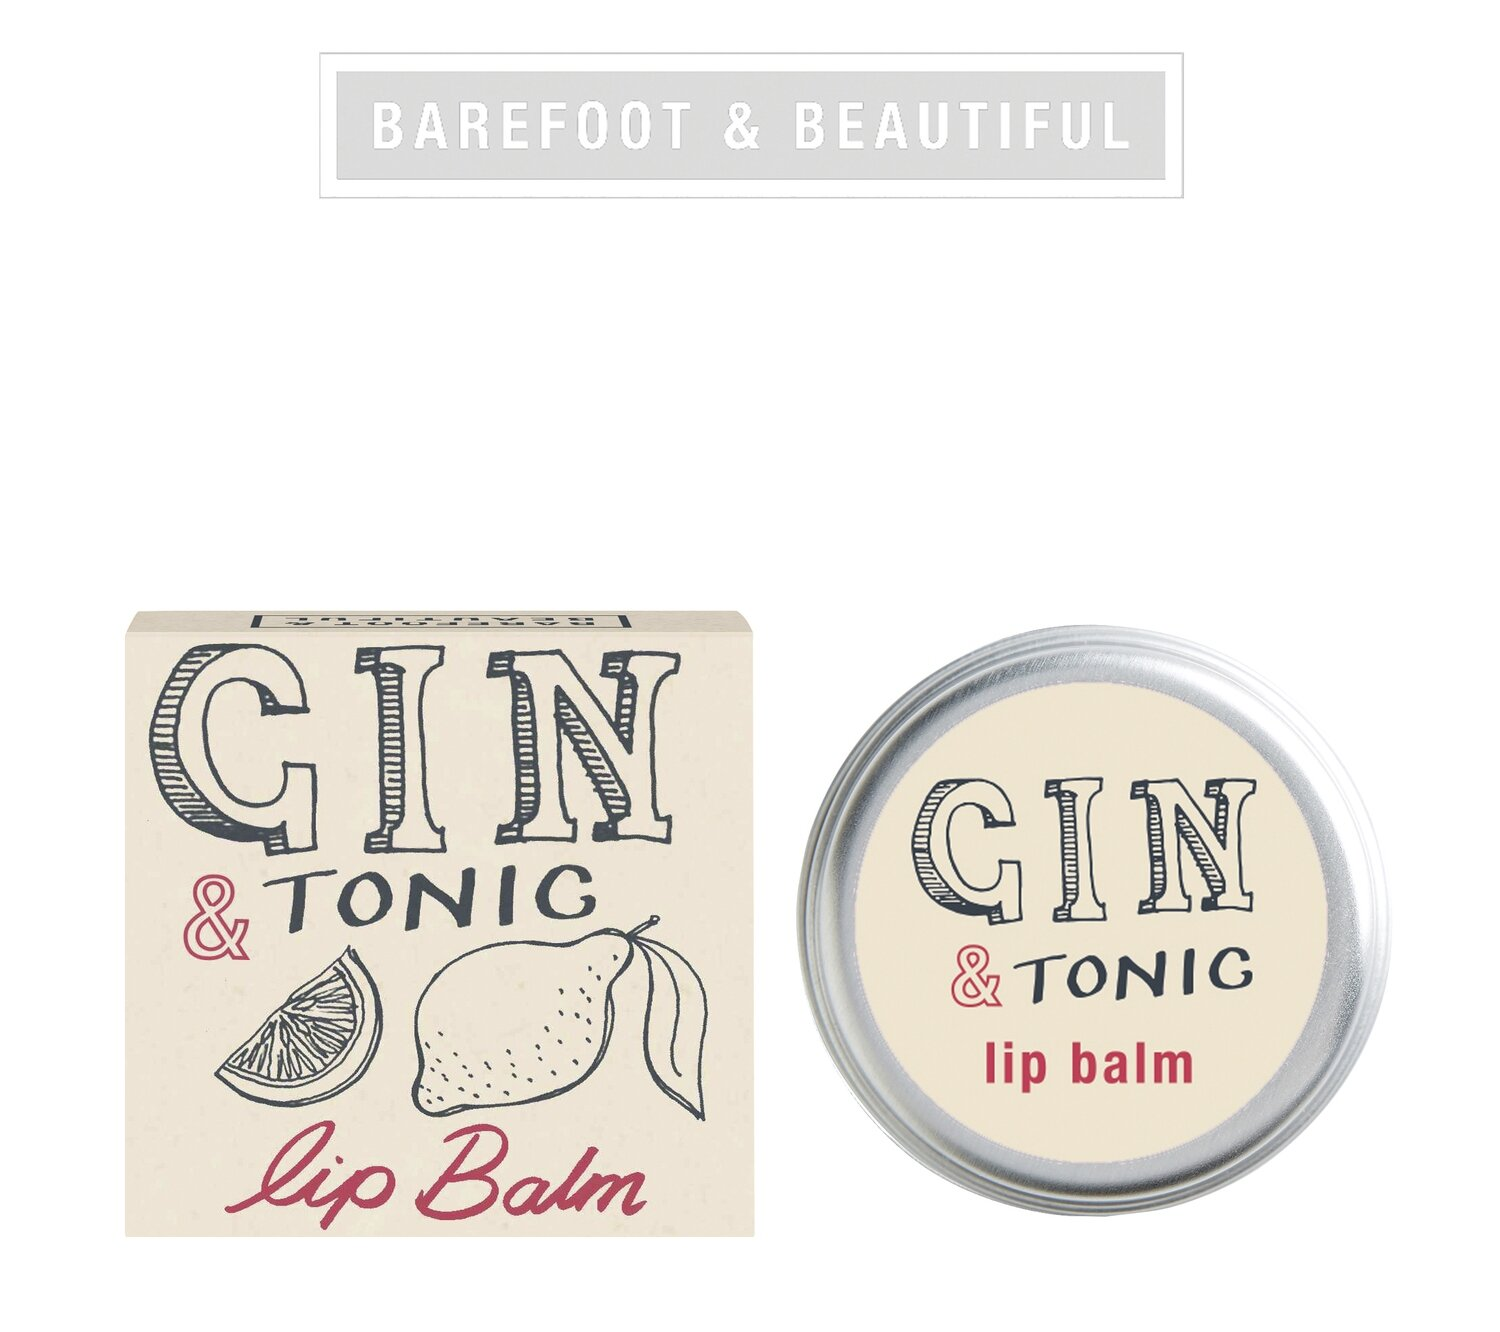 The Bath House Barefoot Gin & Tonic Lip Balm